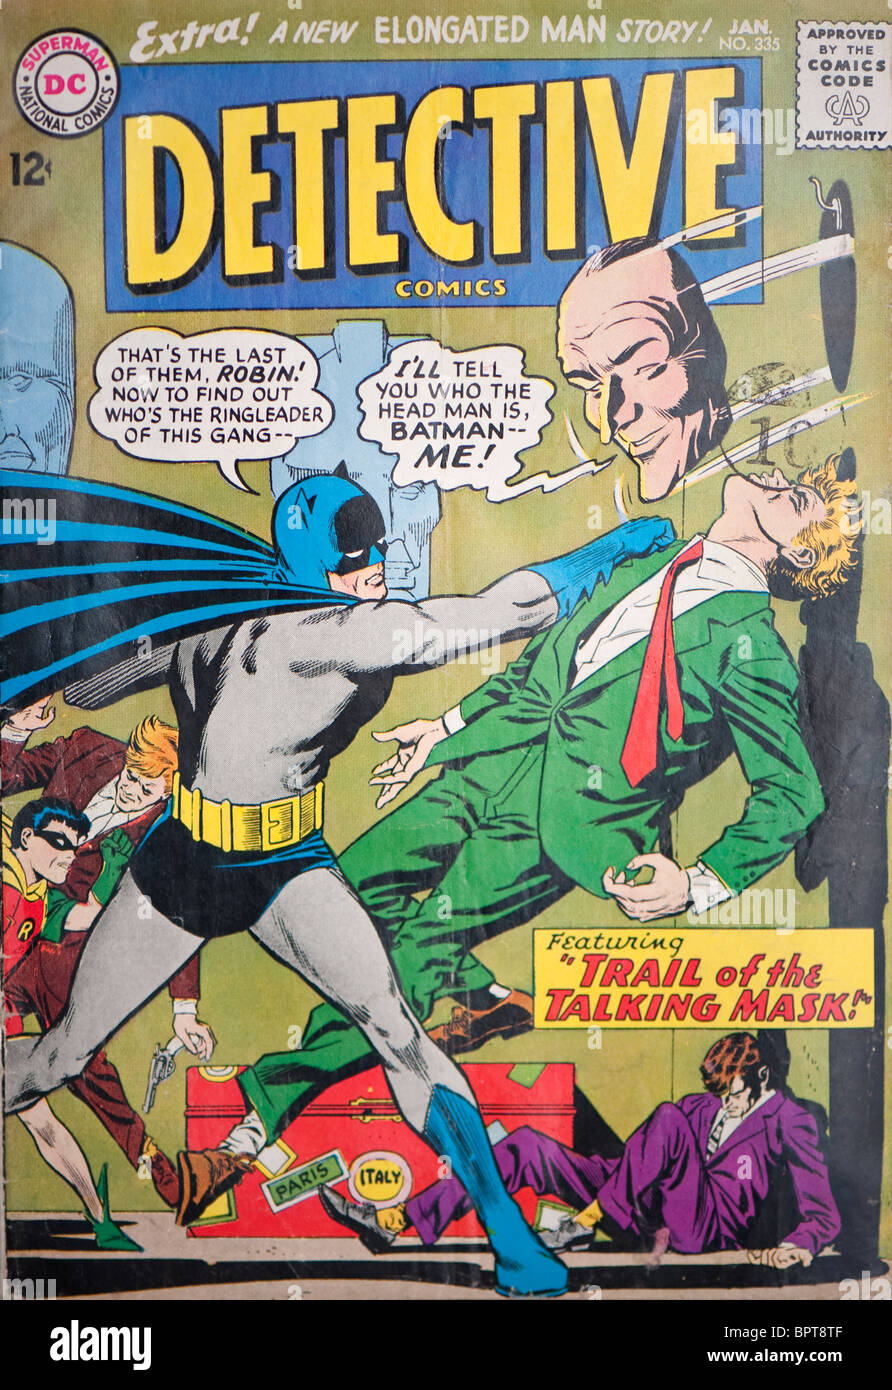 DC Detective Comic with Batman on the cover. - Stock Image